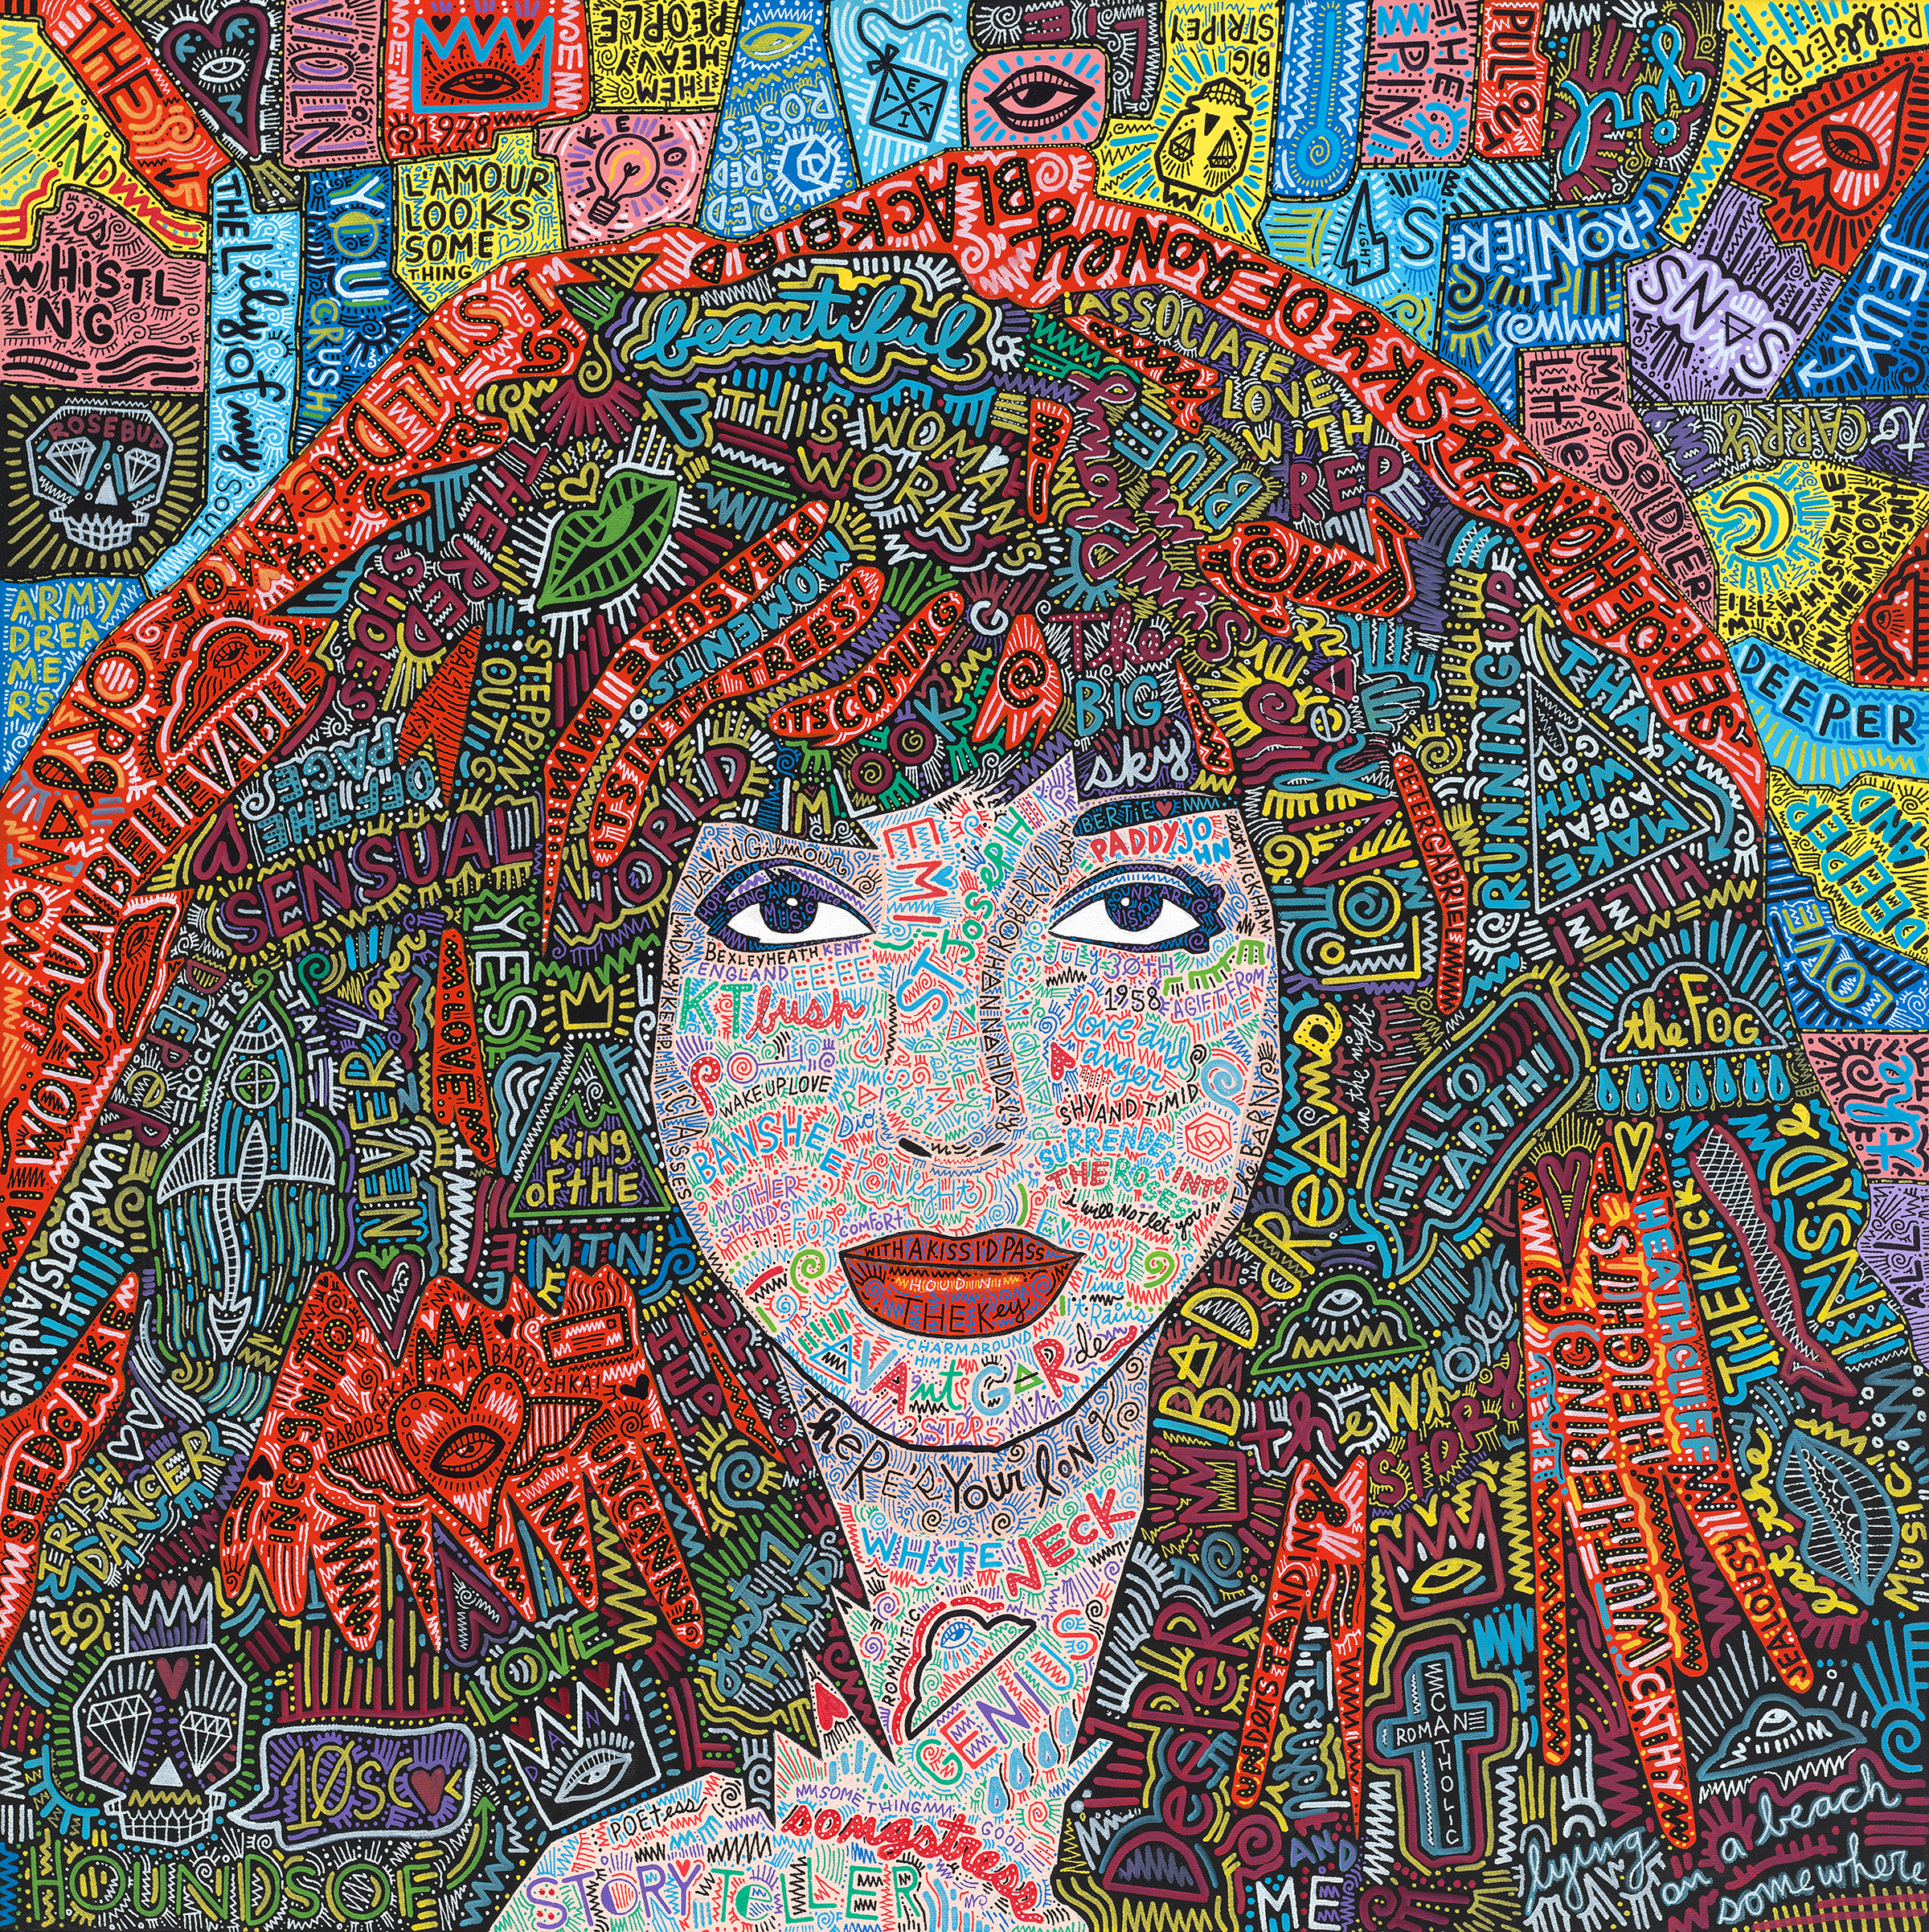 Kate-Bush-Art-Outsider-Tennessee-Loveless-ArtInsights